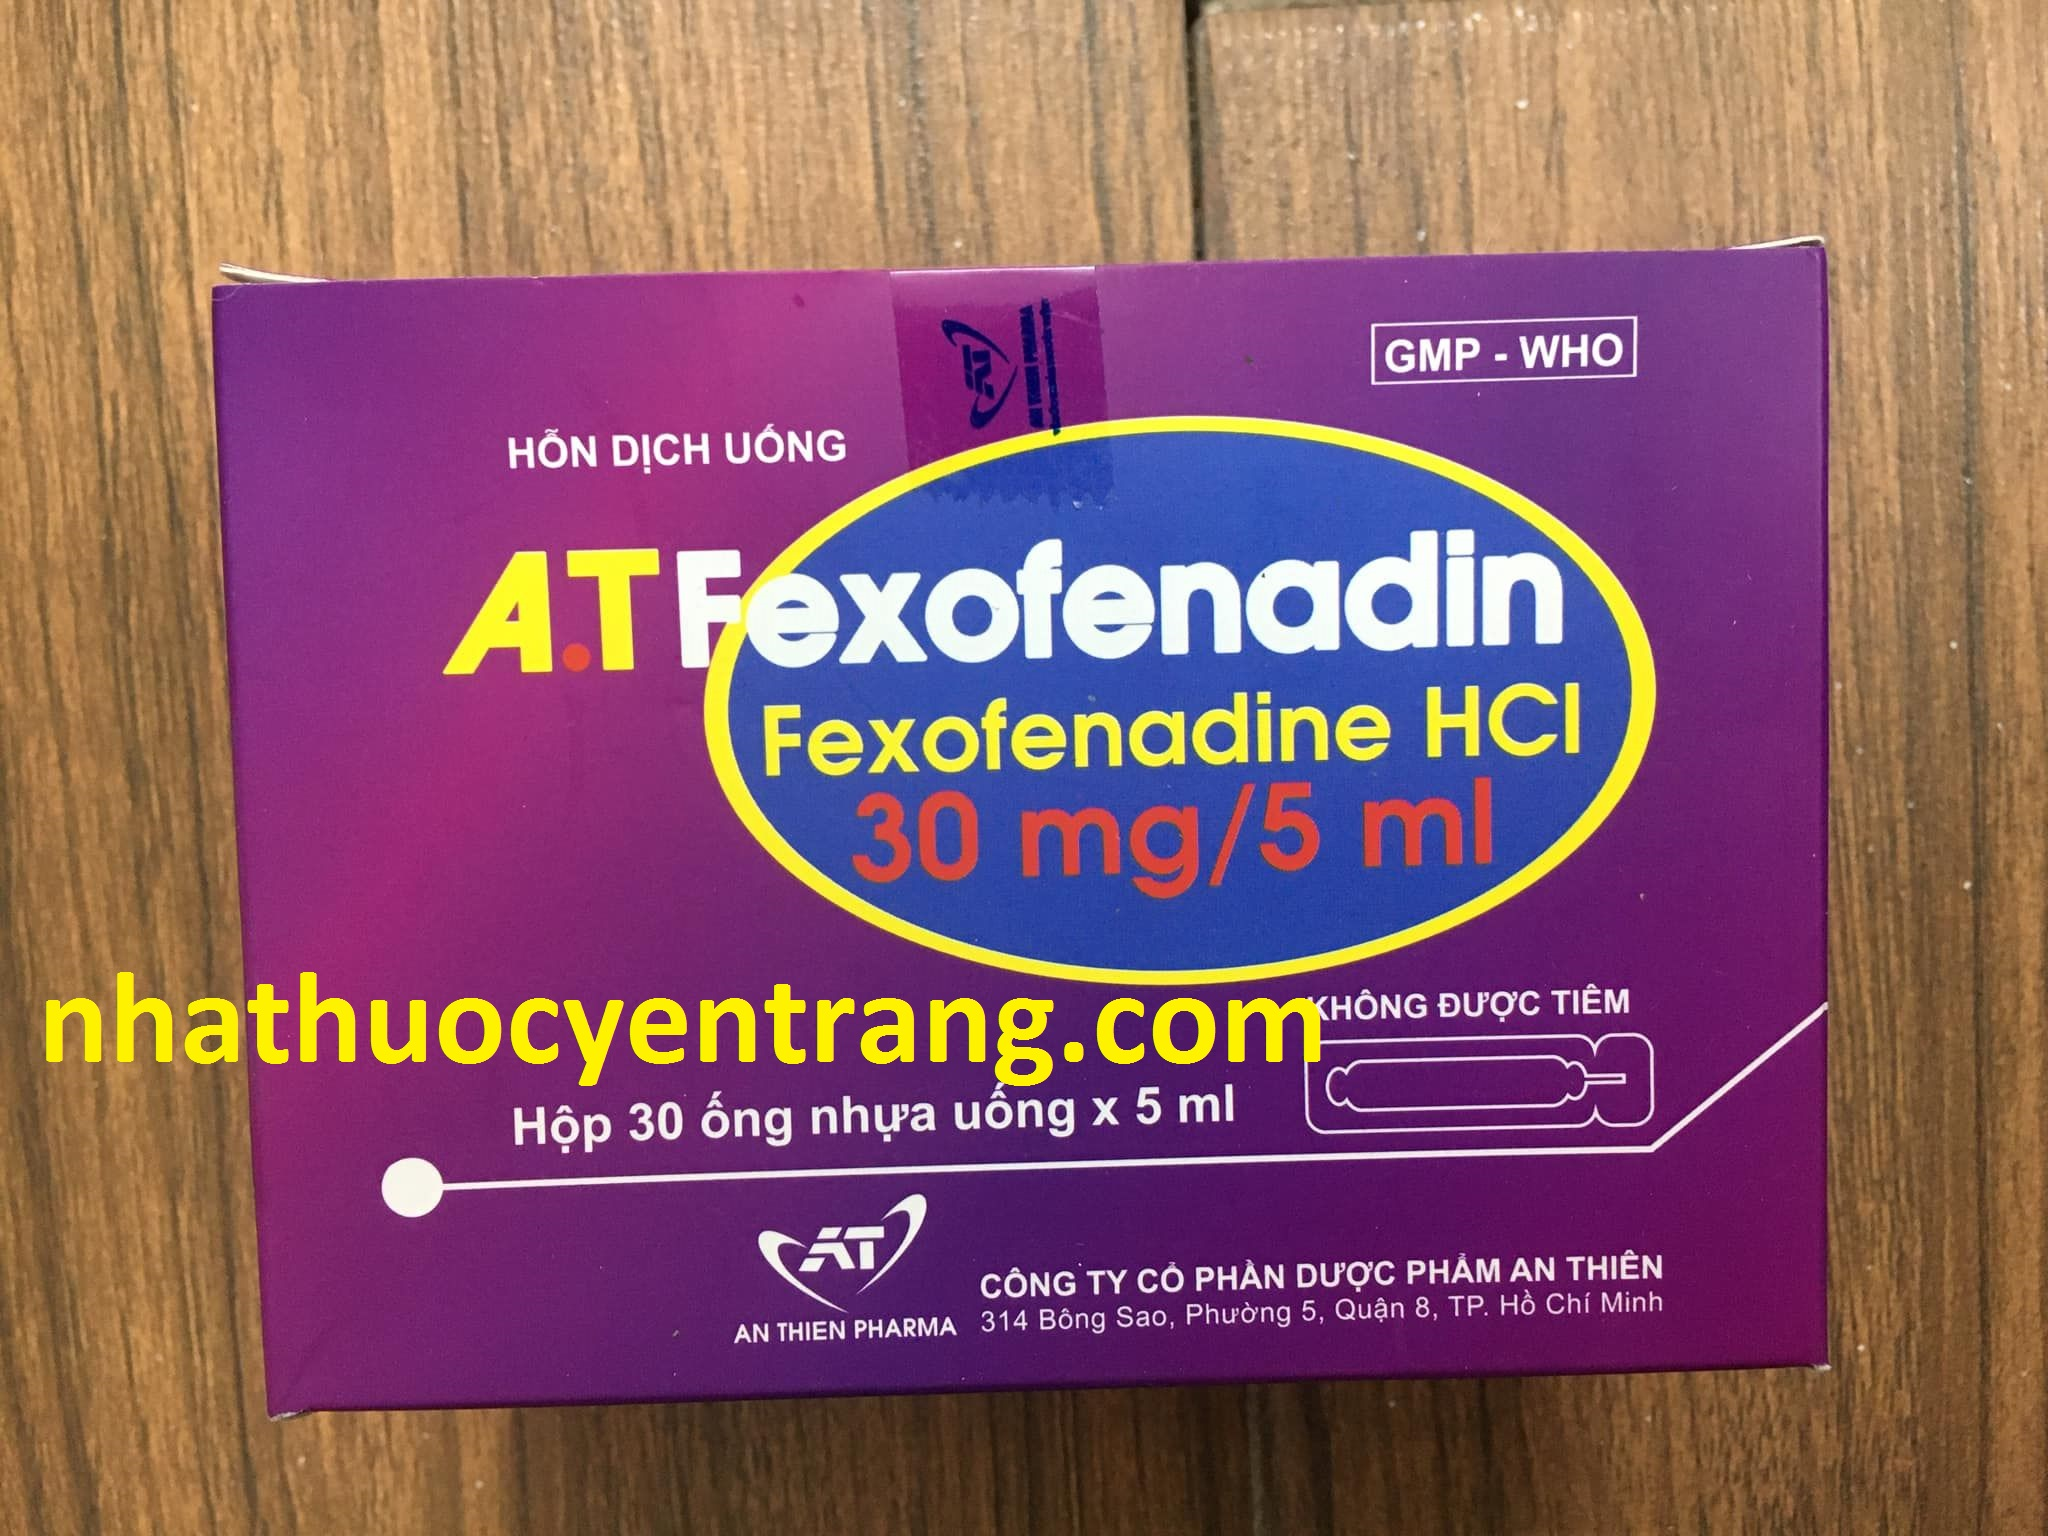 AT Fexofenadin 30mg/5ml